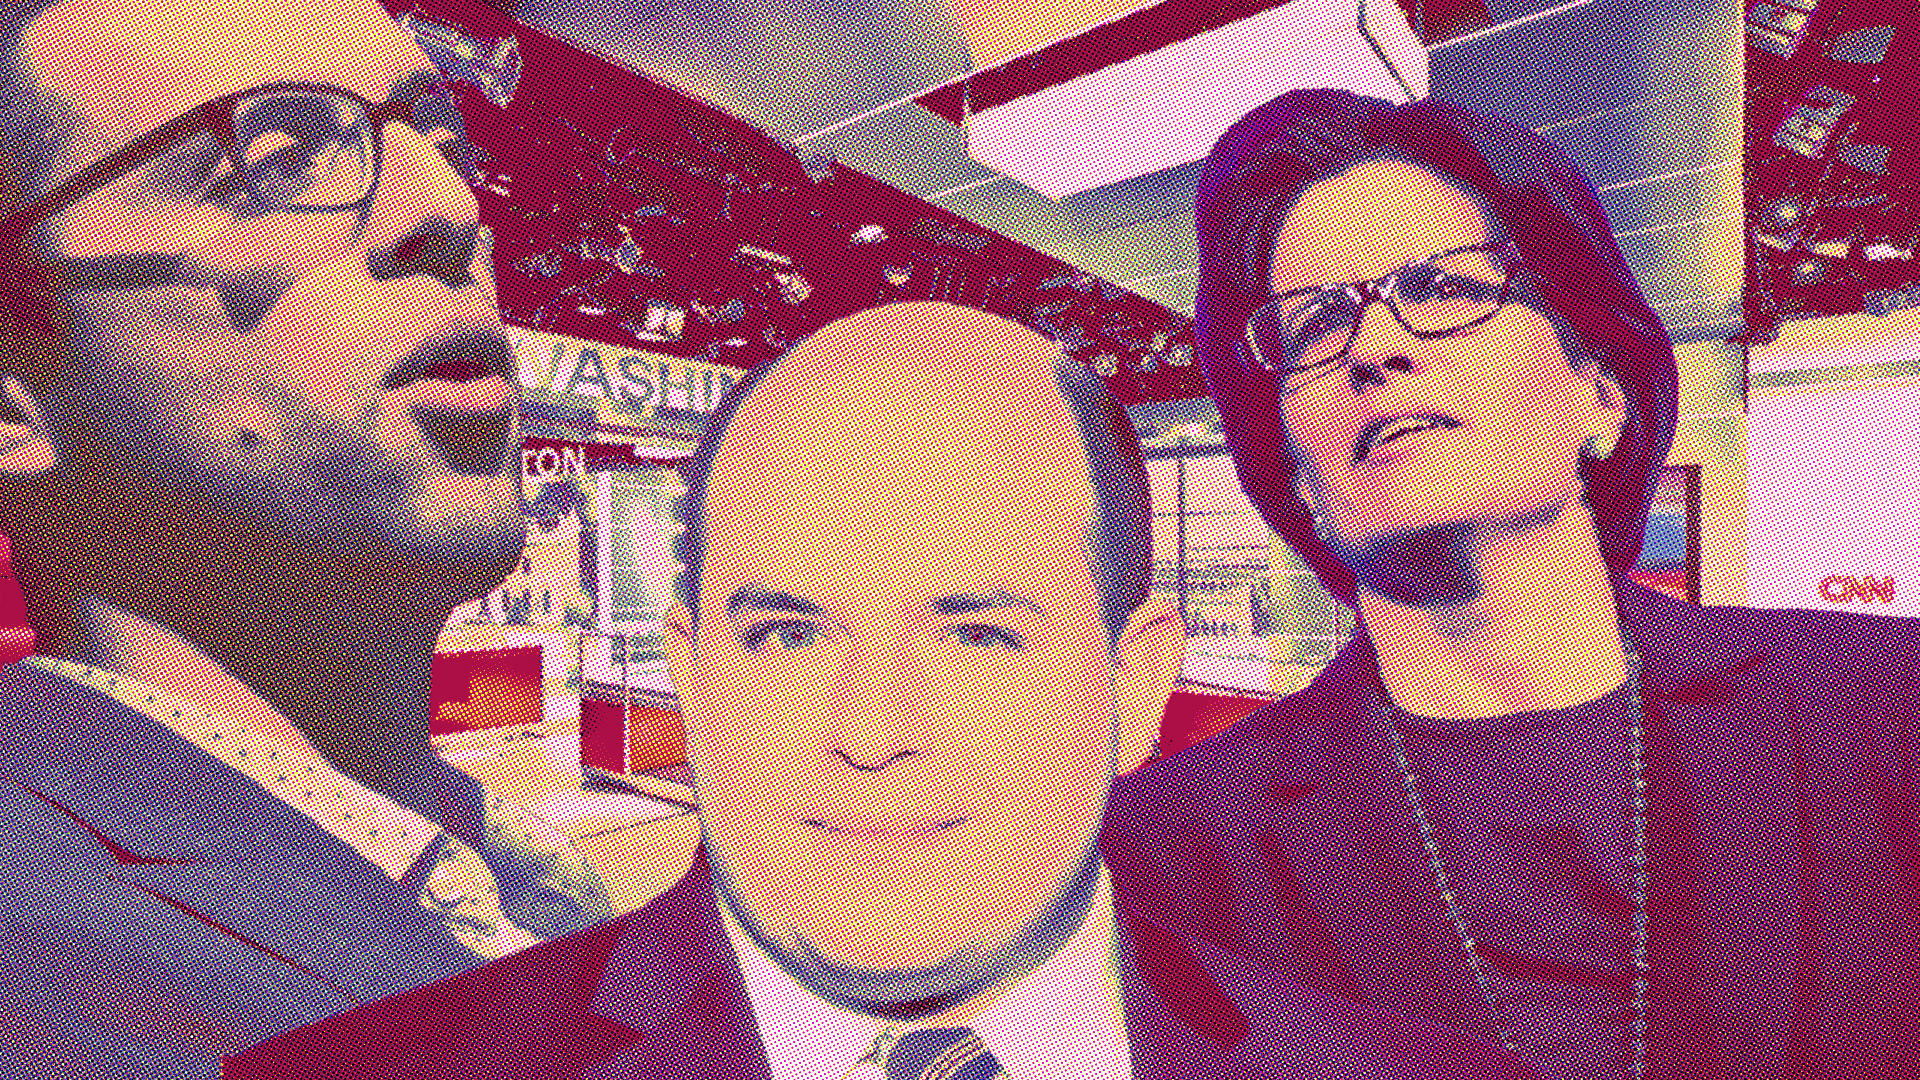 THE INTELLECTUALLY BANKRUPT PREMISE OF INTELLECTUAL BANKRUPTCY / Ezra Klein, Kara Swisher, Brian Stelter